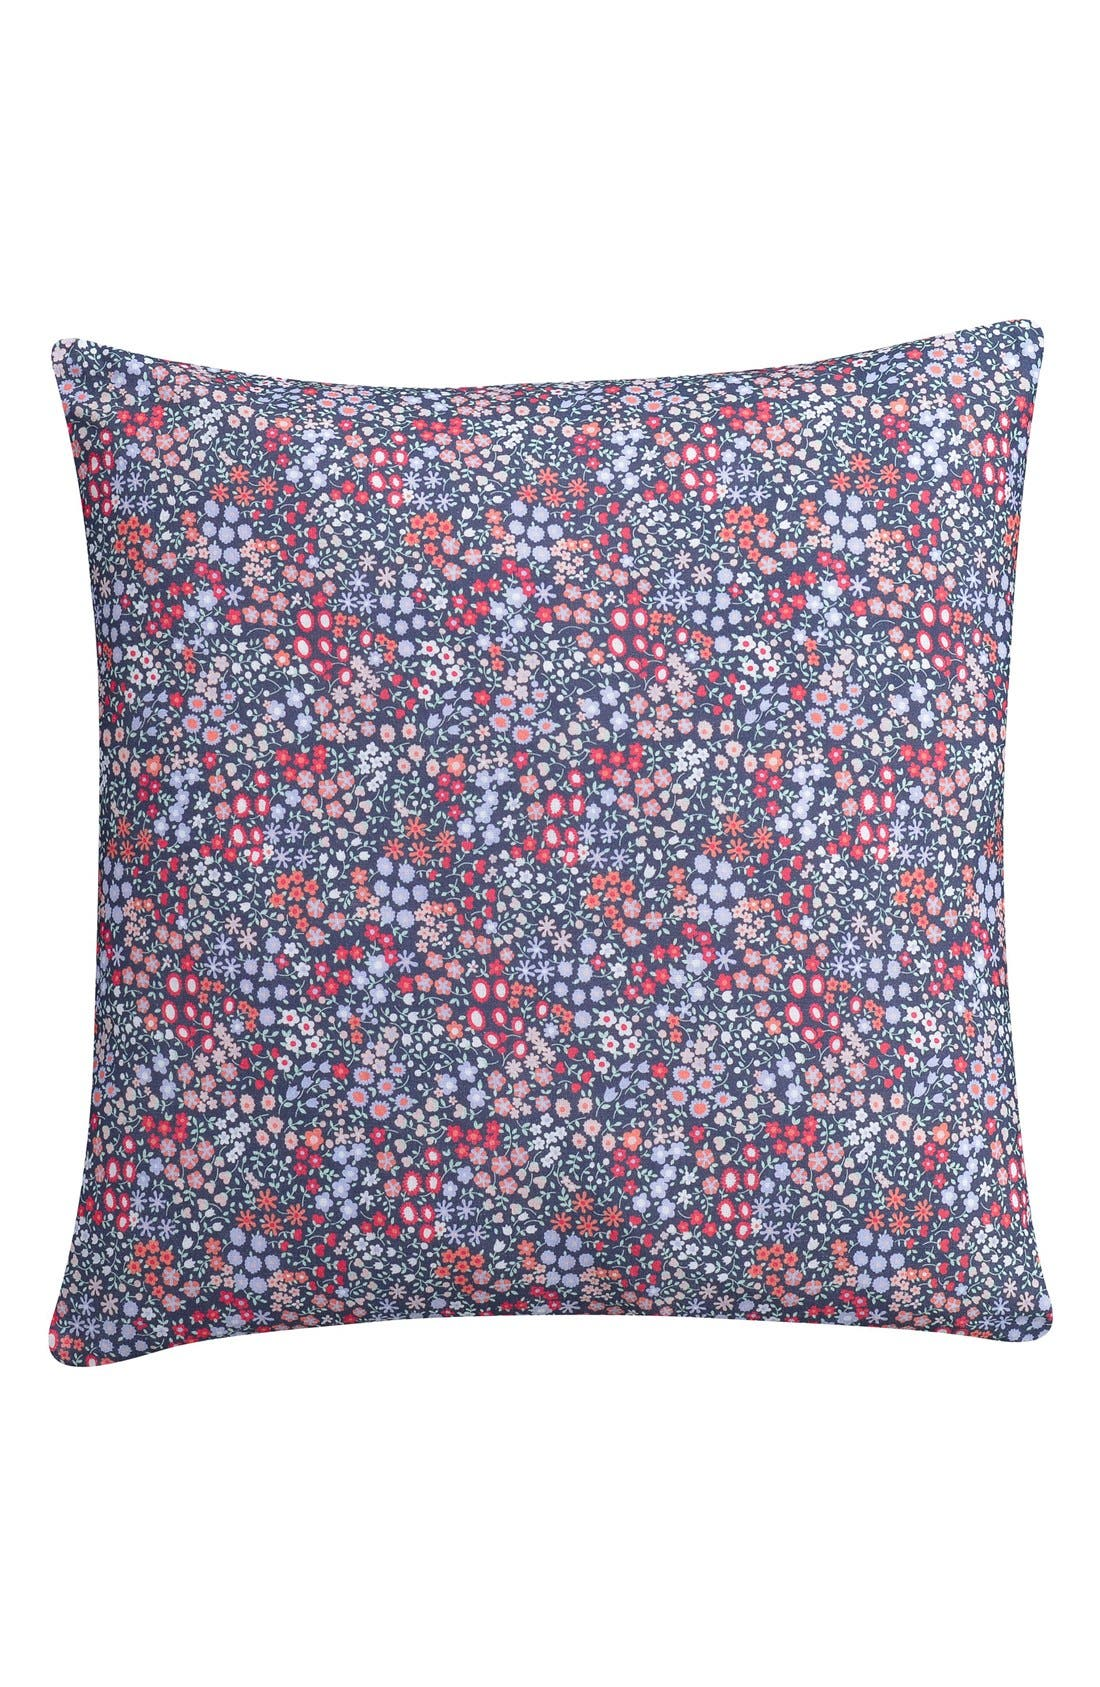 cupcakes and cashmere 'Sketch' Floral Print Accent Pillow